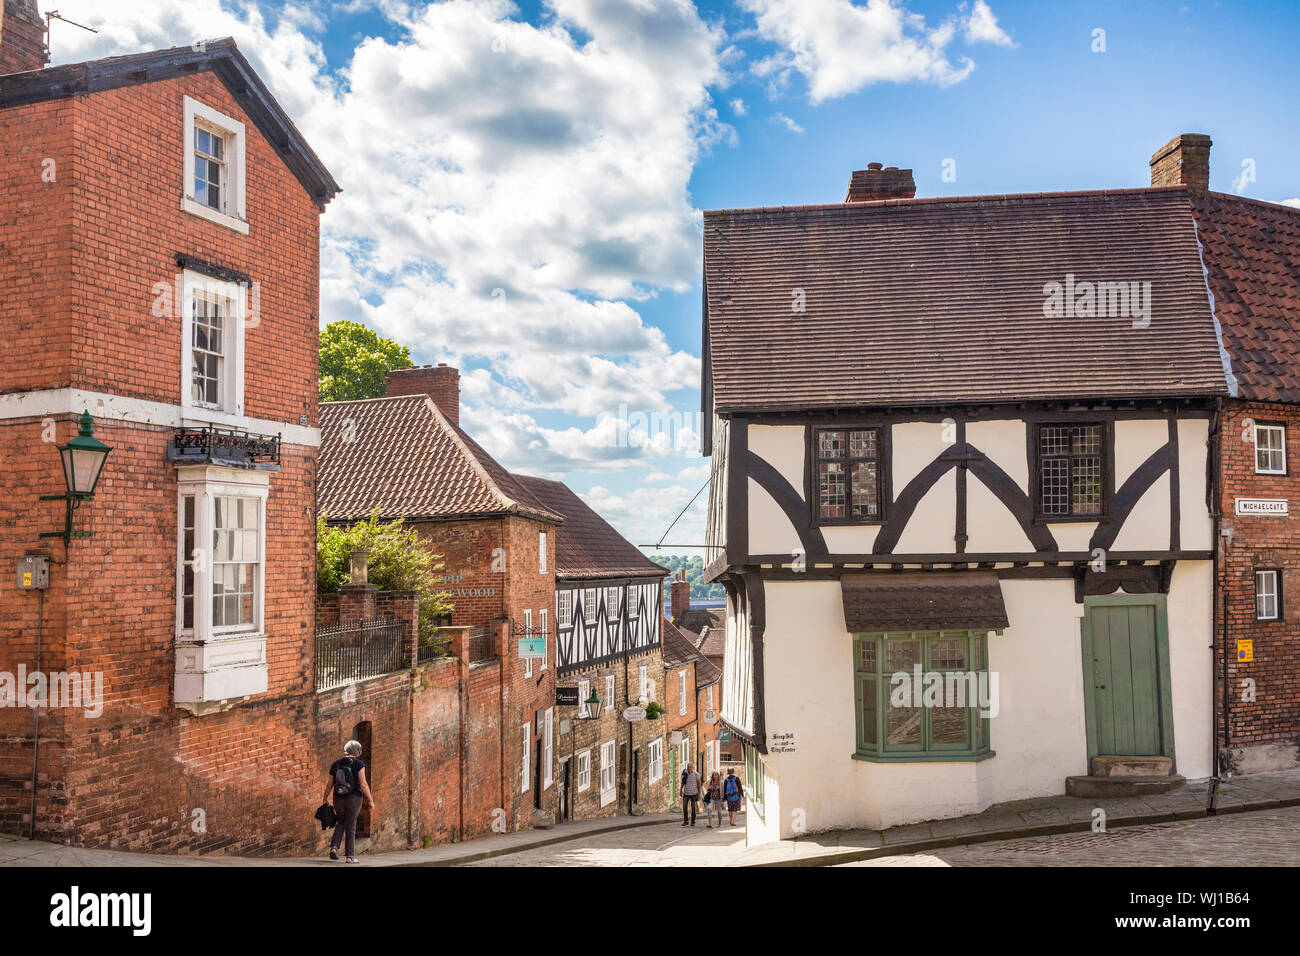 2 July 2019: Lincoln, UK - Tourists near the top of Steep Hill, Lincoln, UK, on a beautiful summer day. Stock Photo